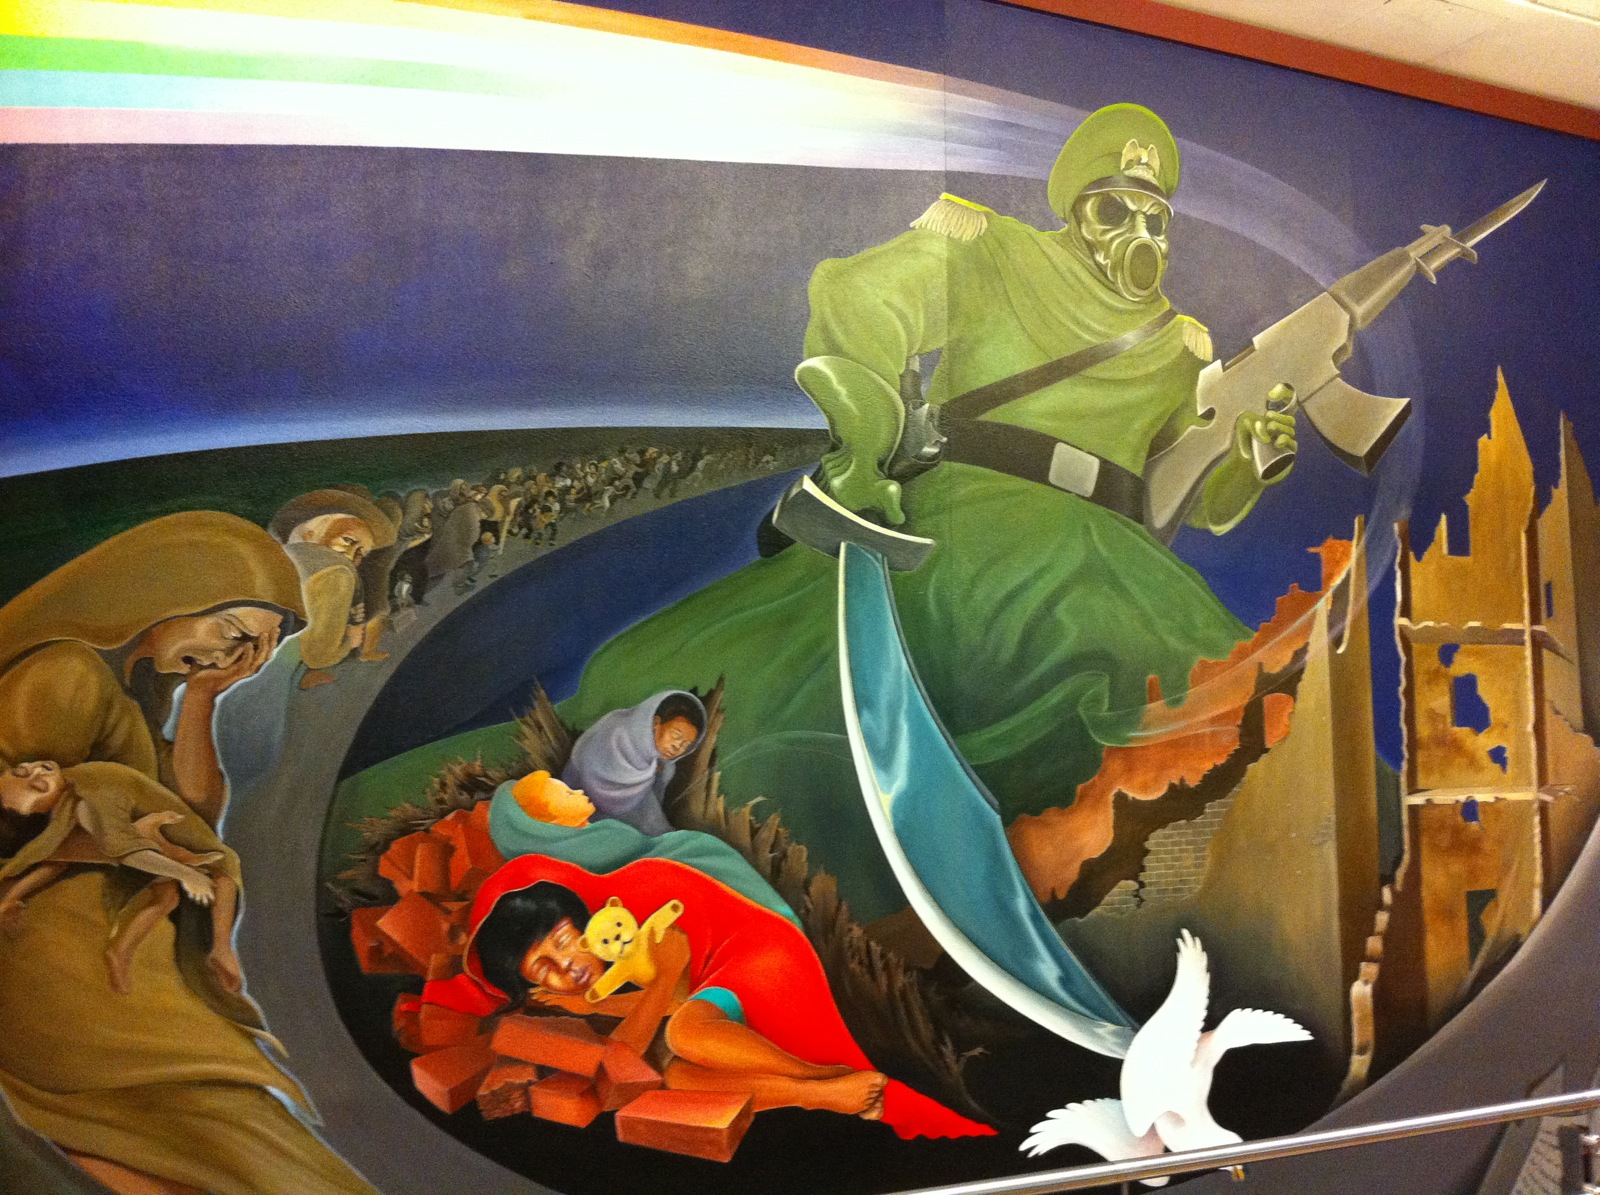 Aeroporto Denver Illuminati : The freaky murals at denver international airport boing